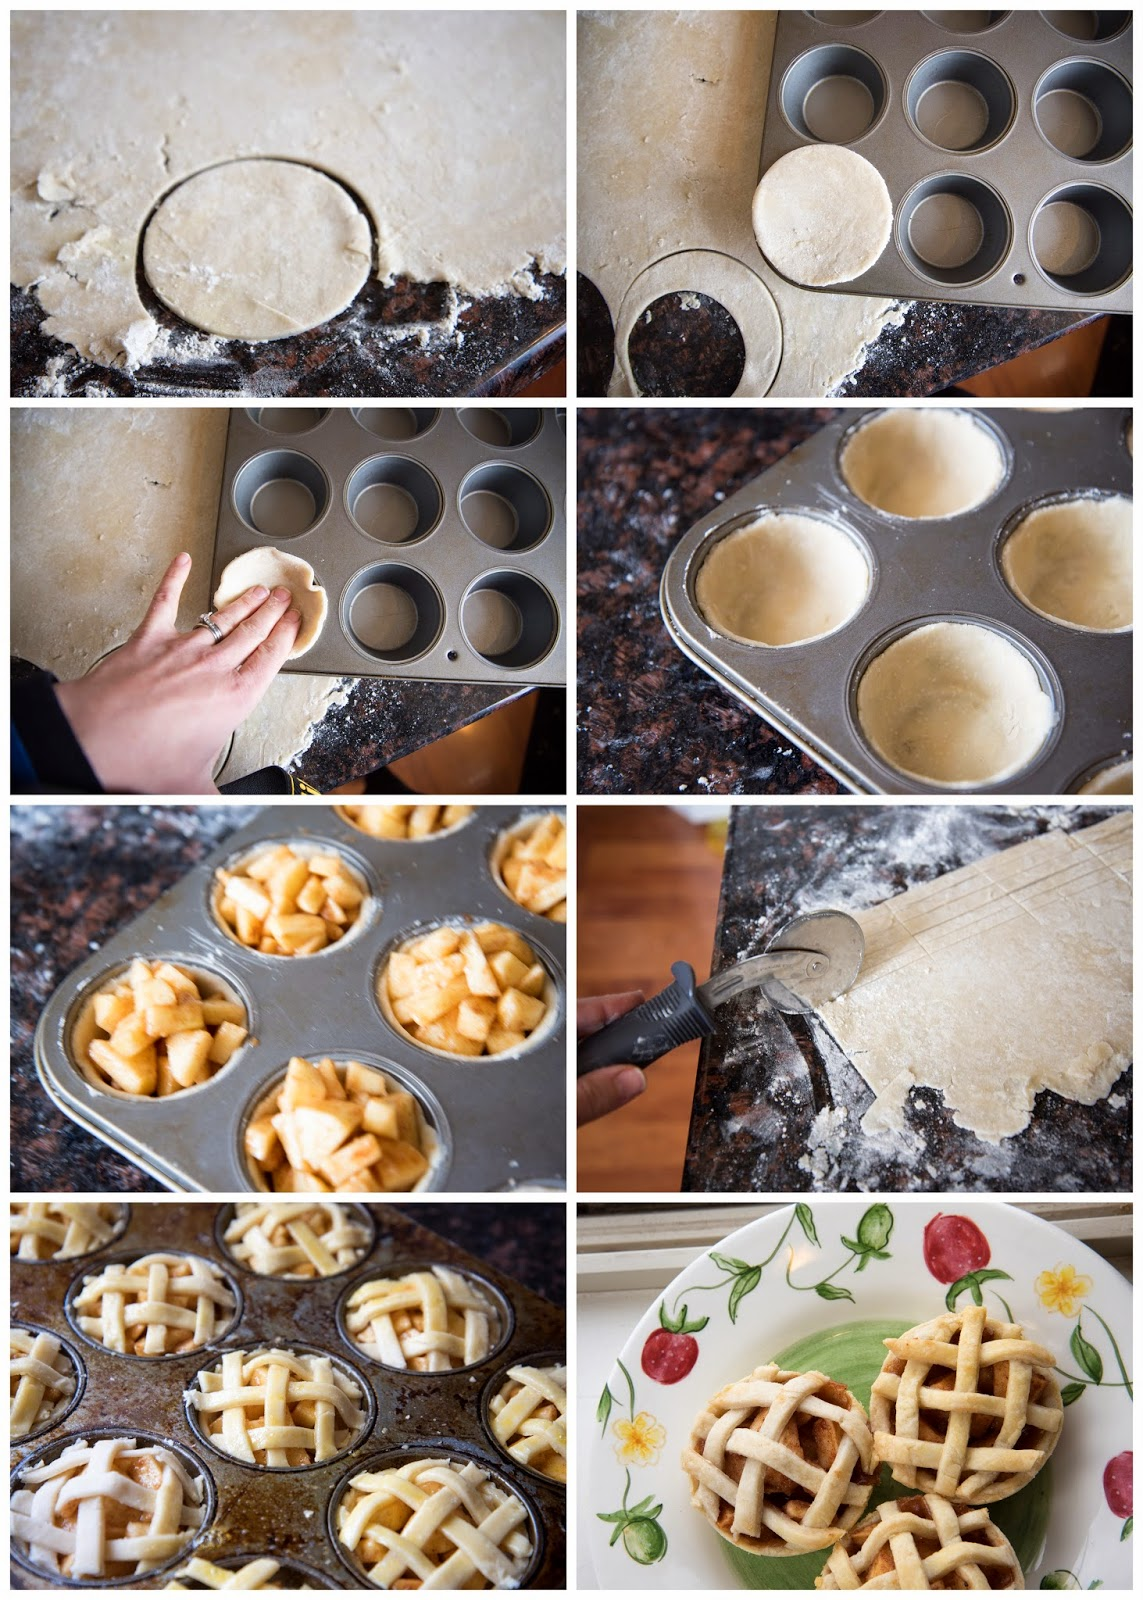 Make your own mini apple pie in muffin tins